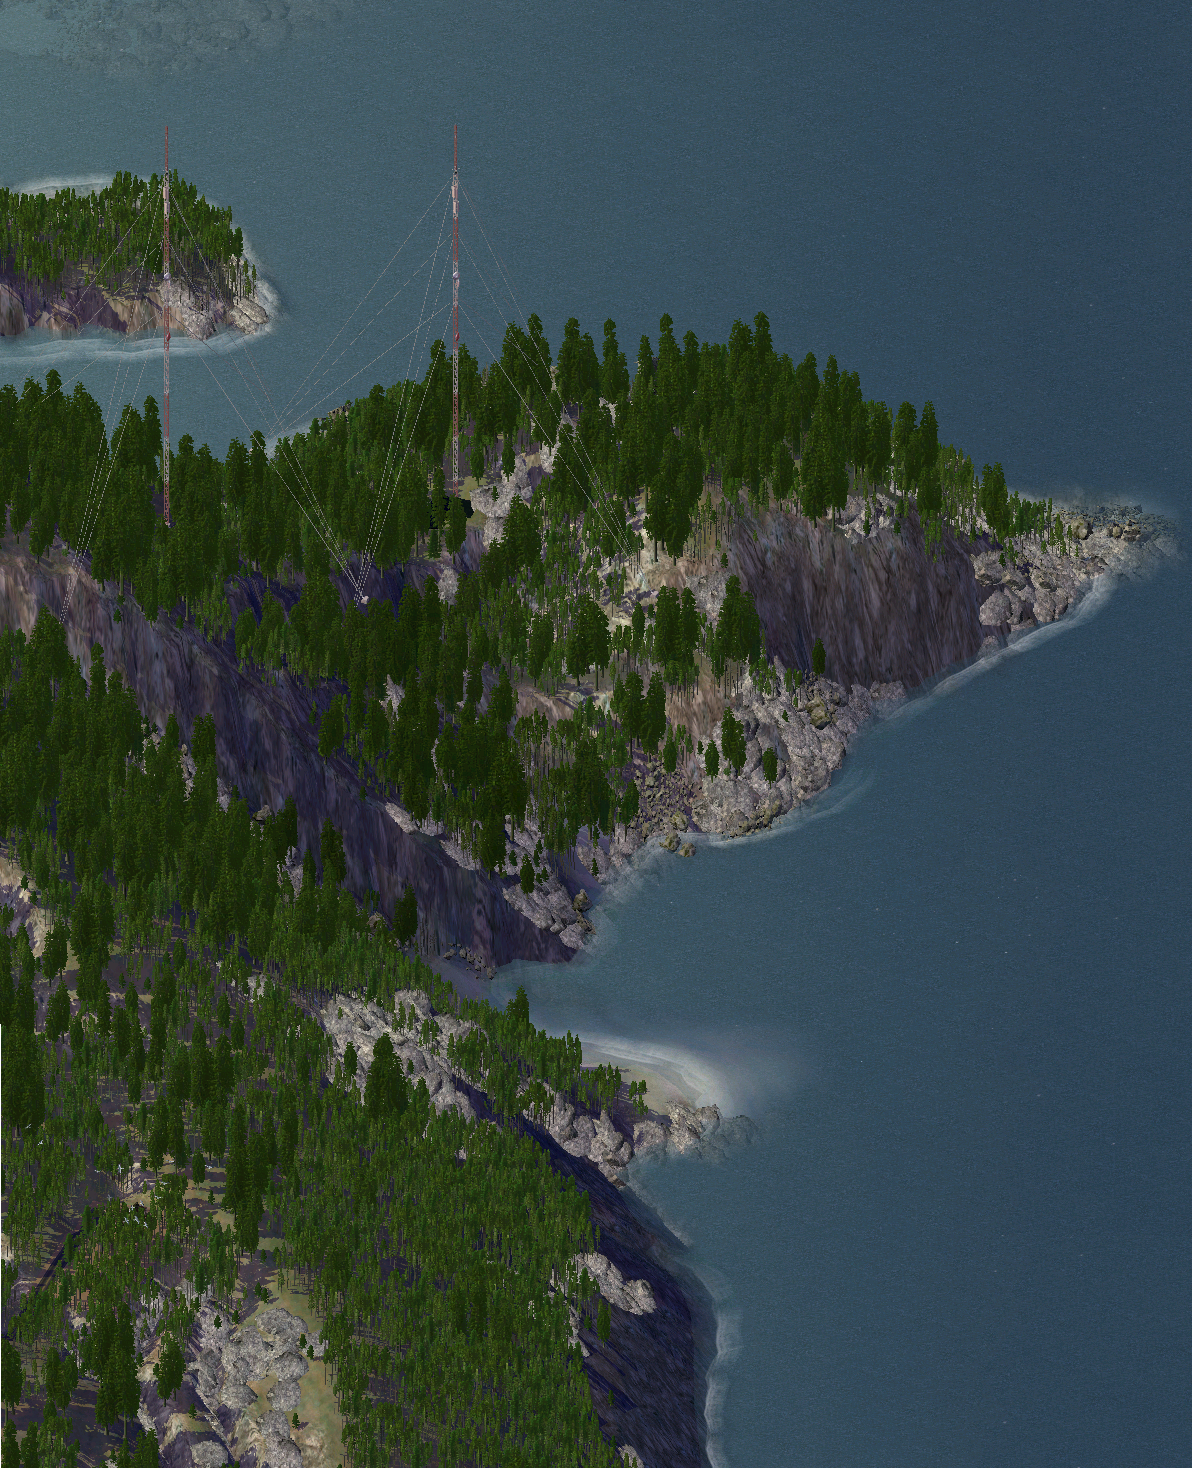 coastline__sc4_by_soulproductions-d5rxyy2.png